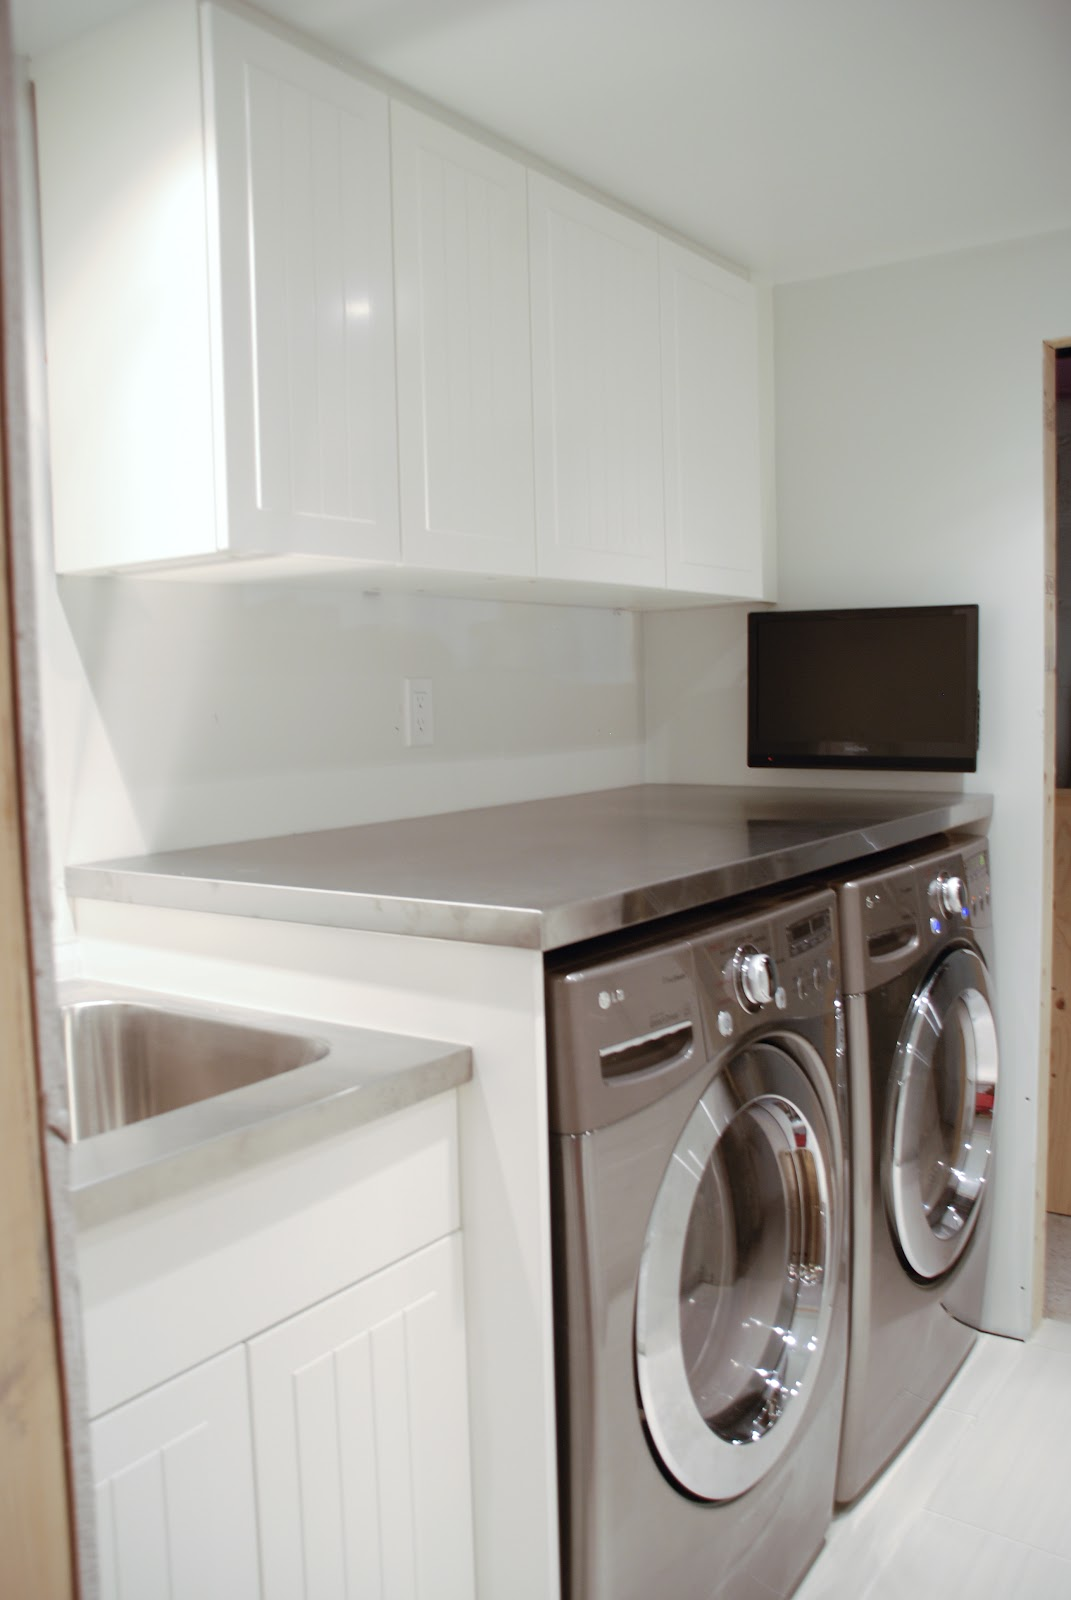 How To Support A Laundry Room Countertop Over A Washer And Dryer